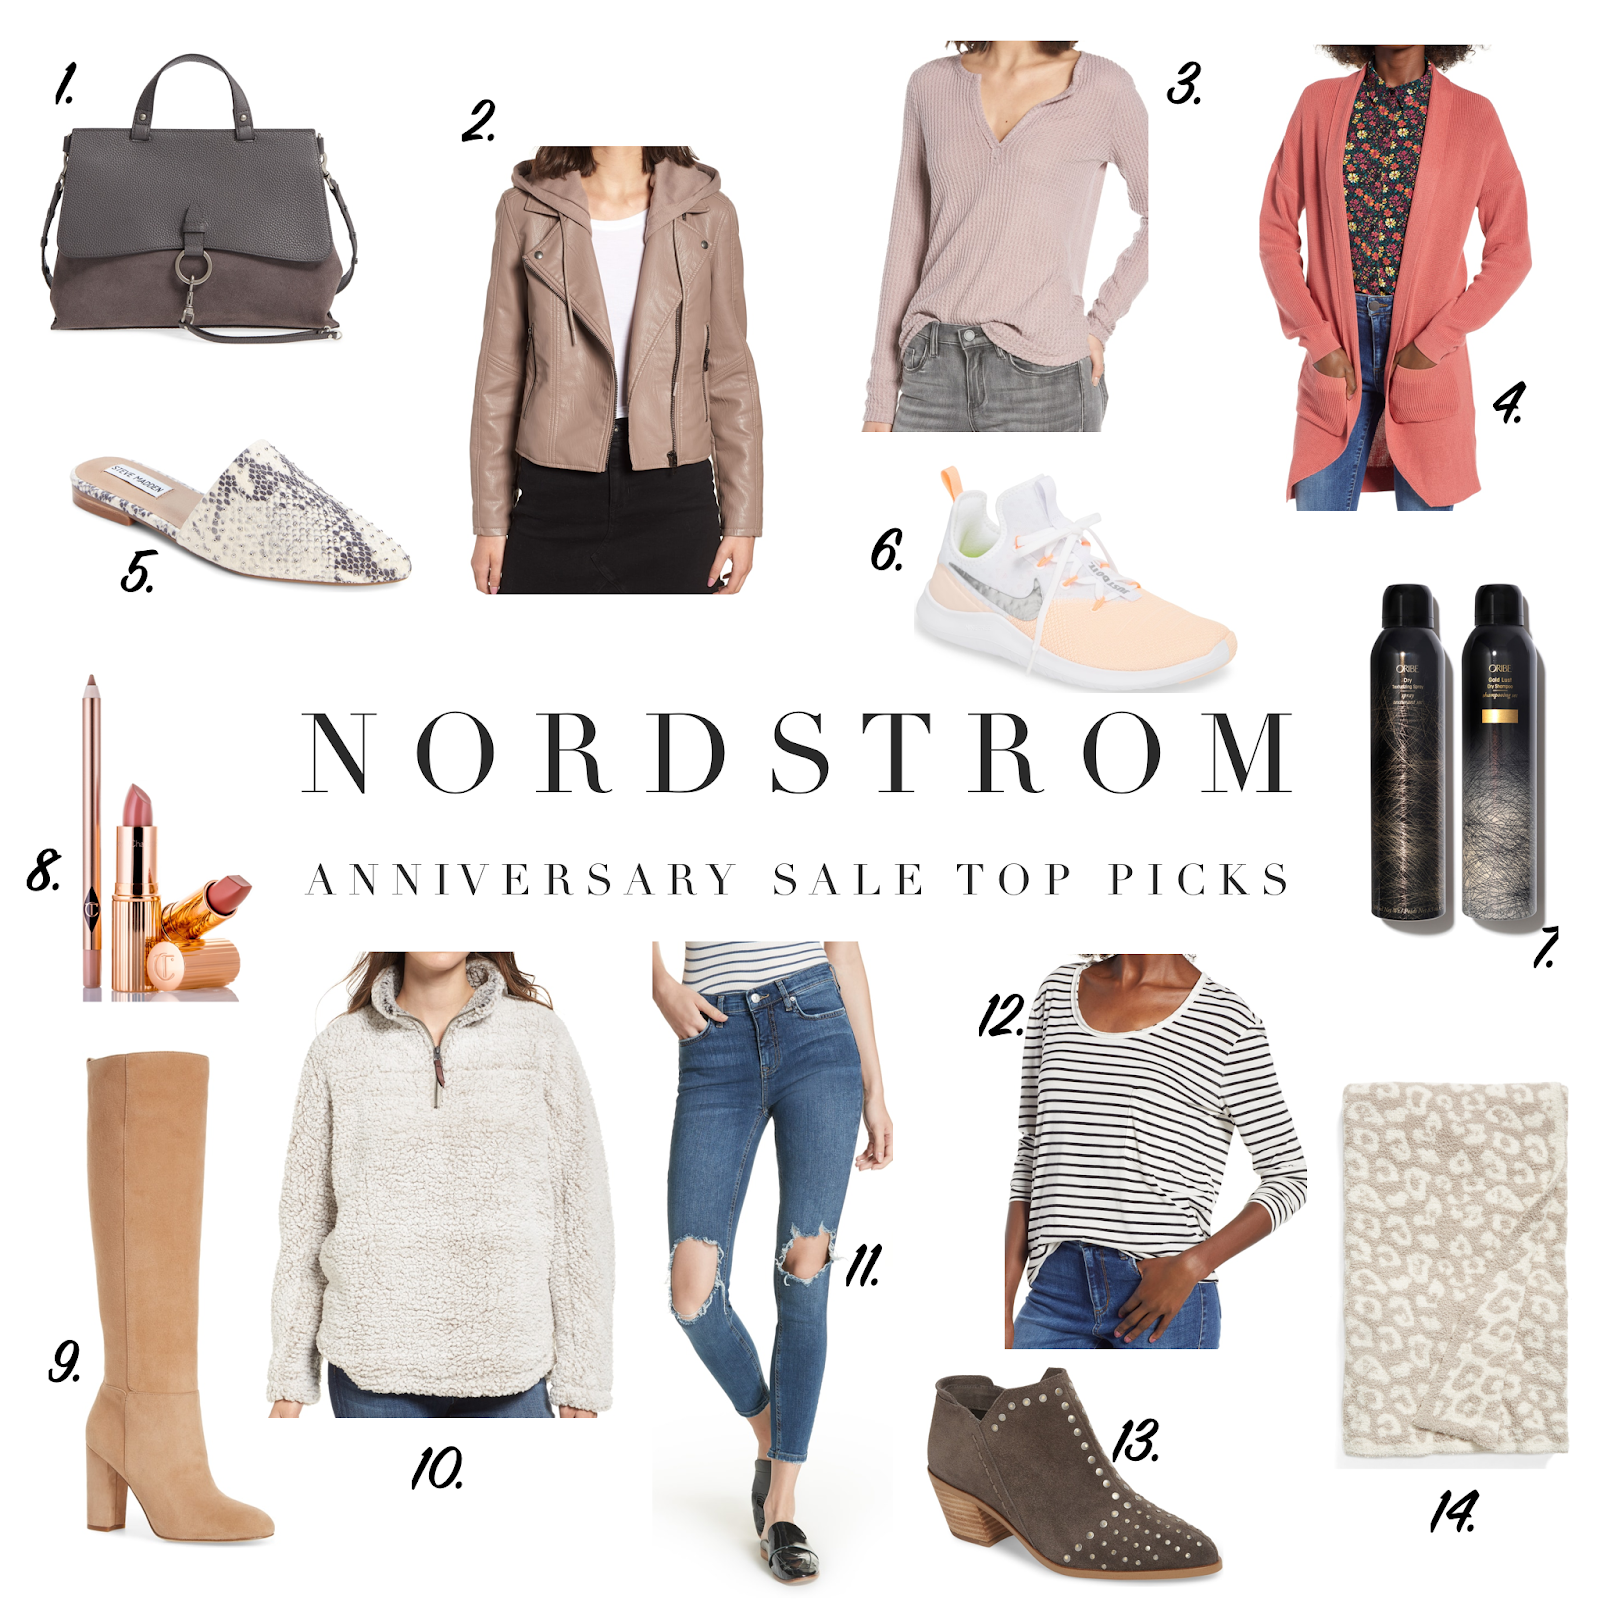 132b0b33db8 My Top First Overall Picks From The Nordstrom Sale - Ashley Donielle